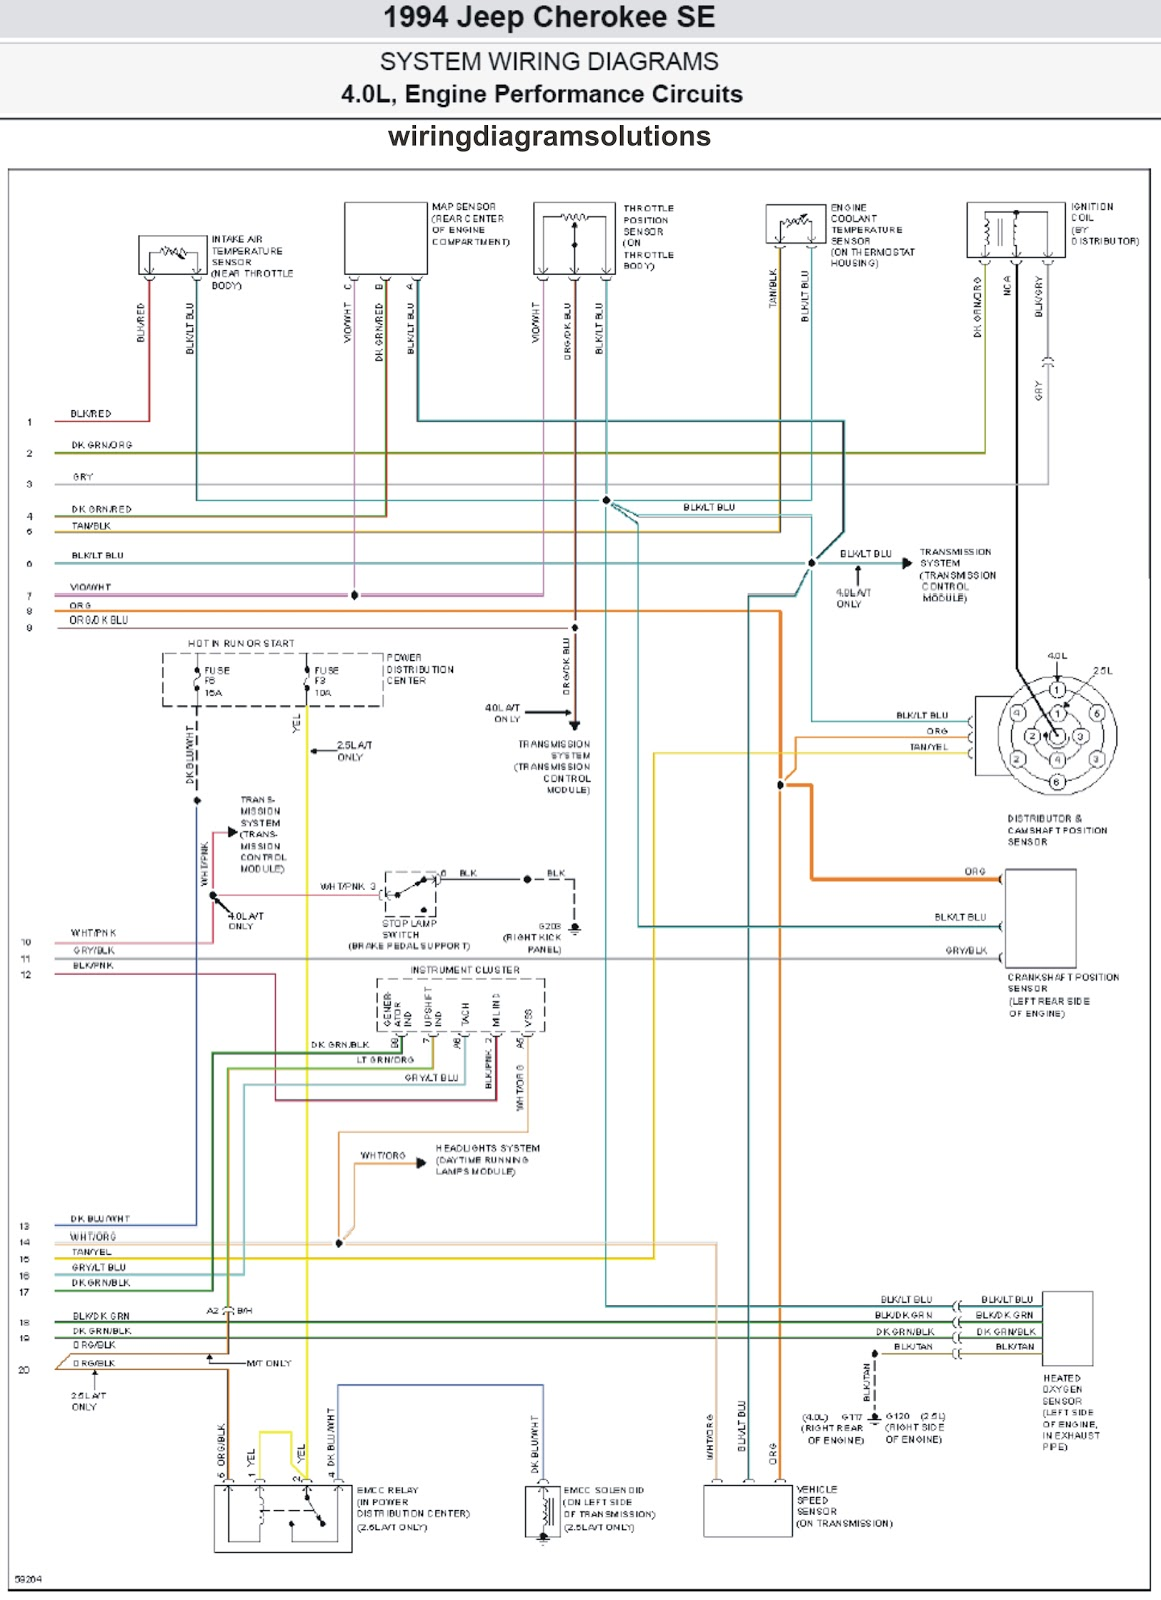 1990 jeep cherokee fuel pump wire diagram